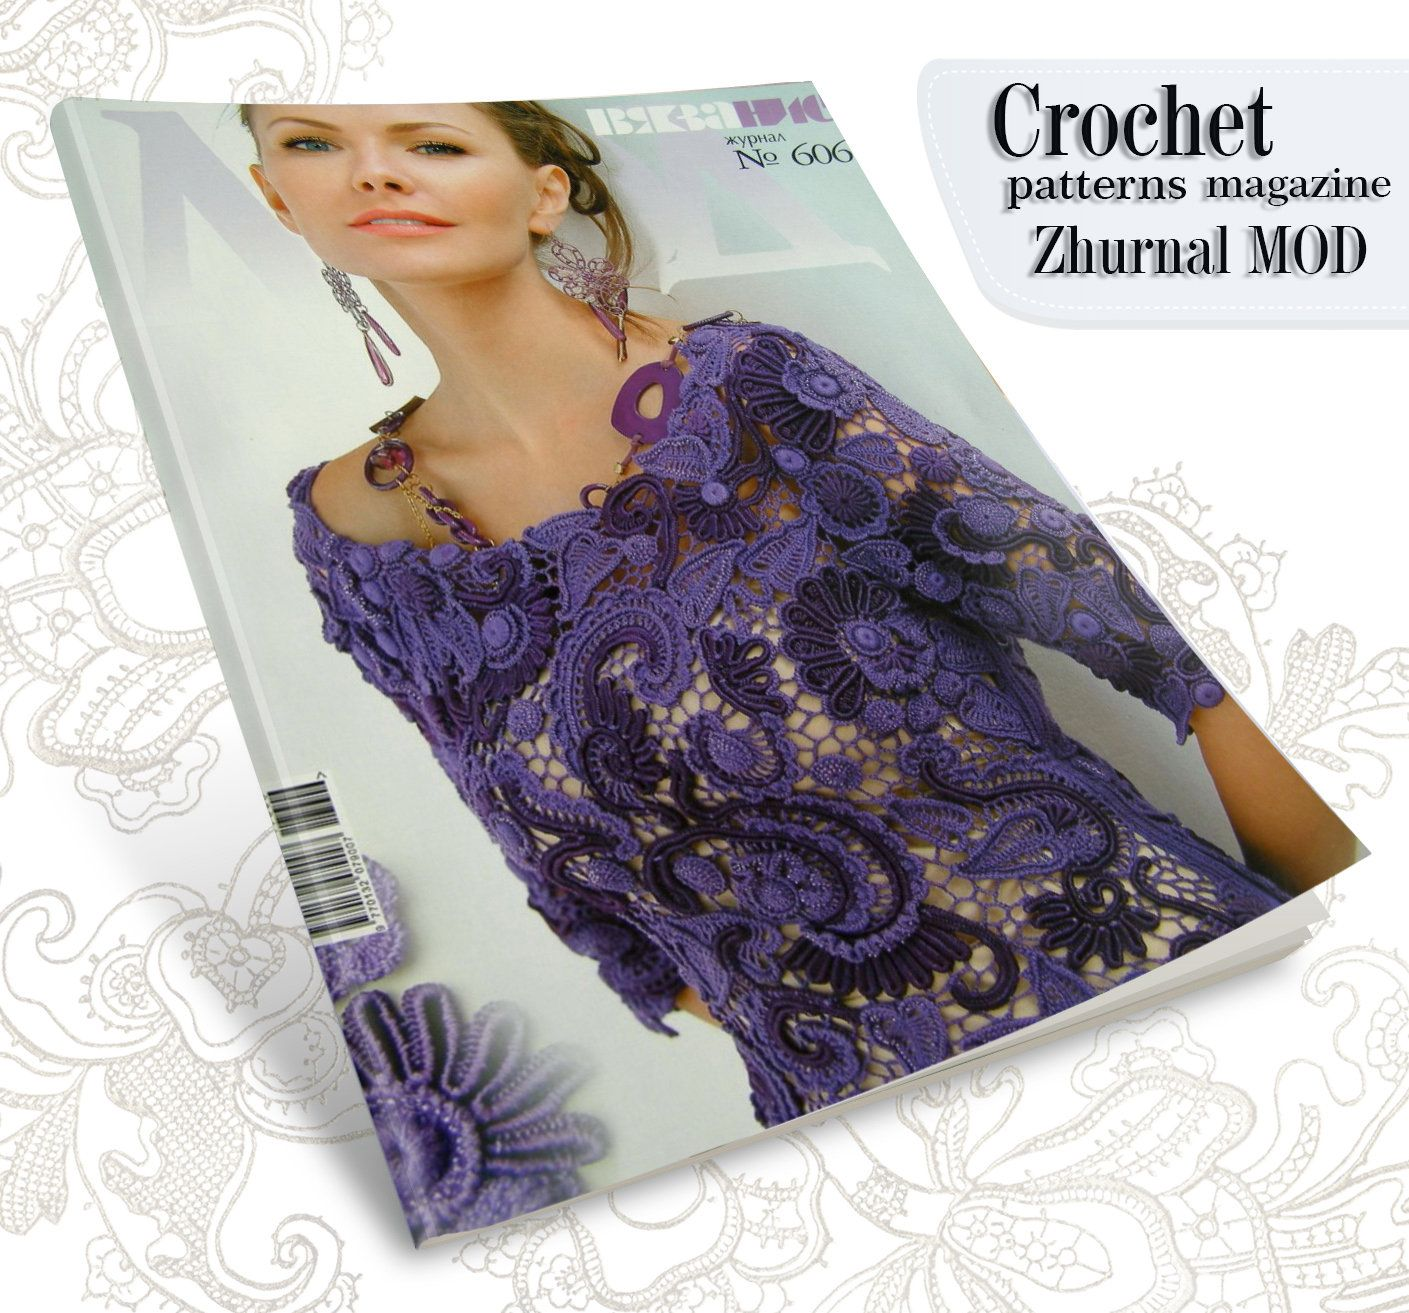 Zhurnal Mod # 606 Crochet patterns Dress jackets, Irish lace dress, top, skirt, cardigan #irishlacecrochetpattern